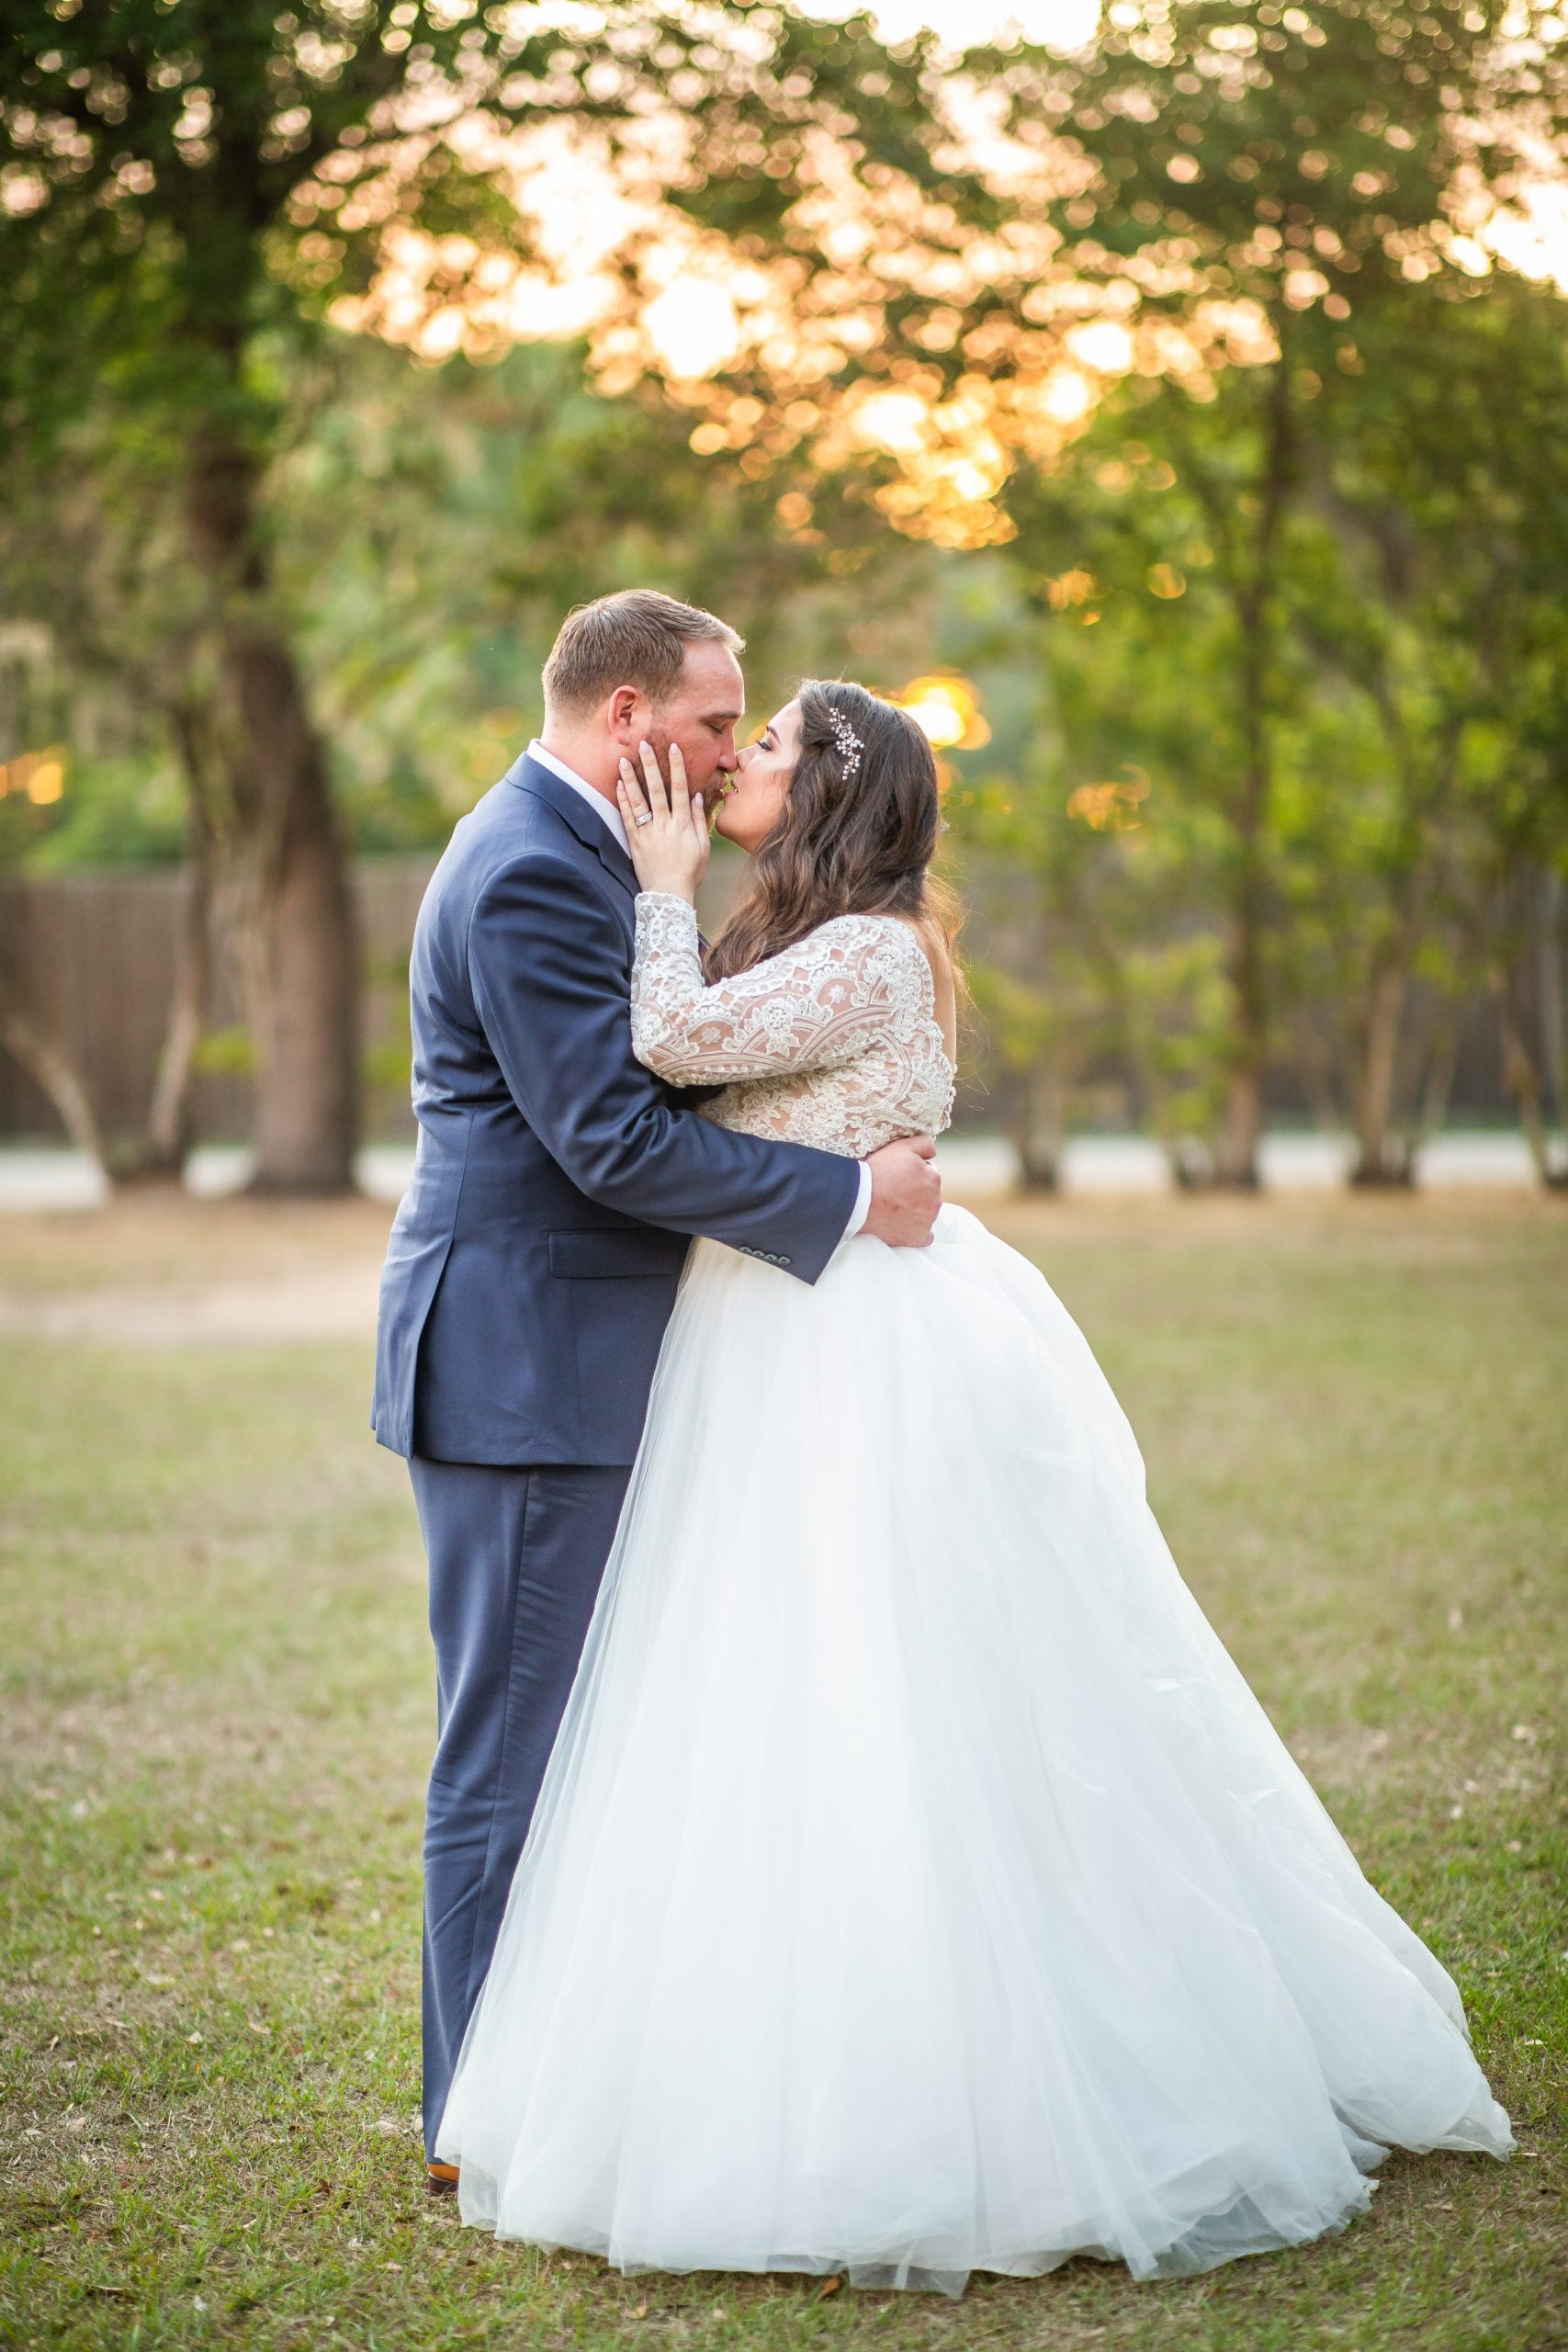 Taylor + Kelly's Intimate Rustic Luxe Wedding